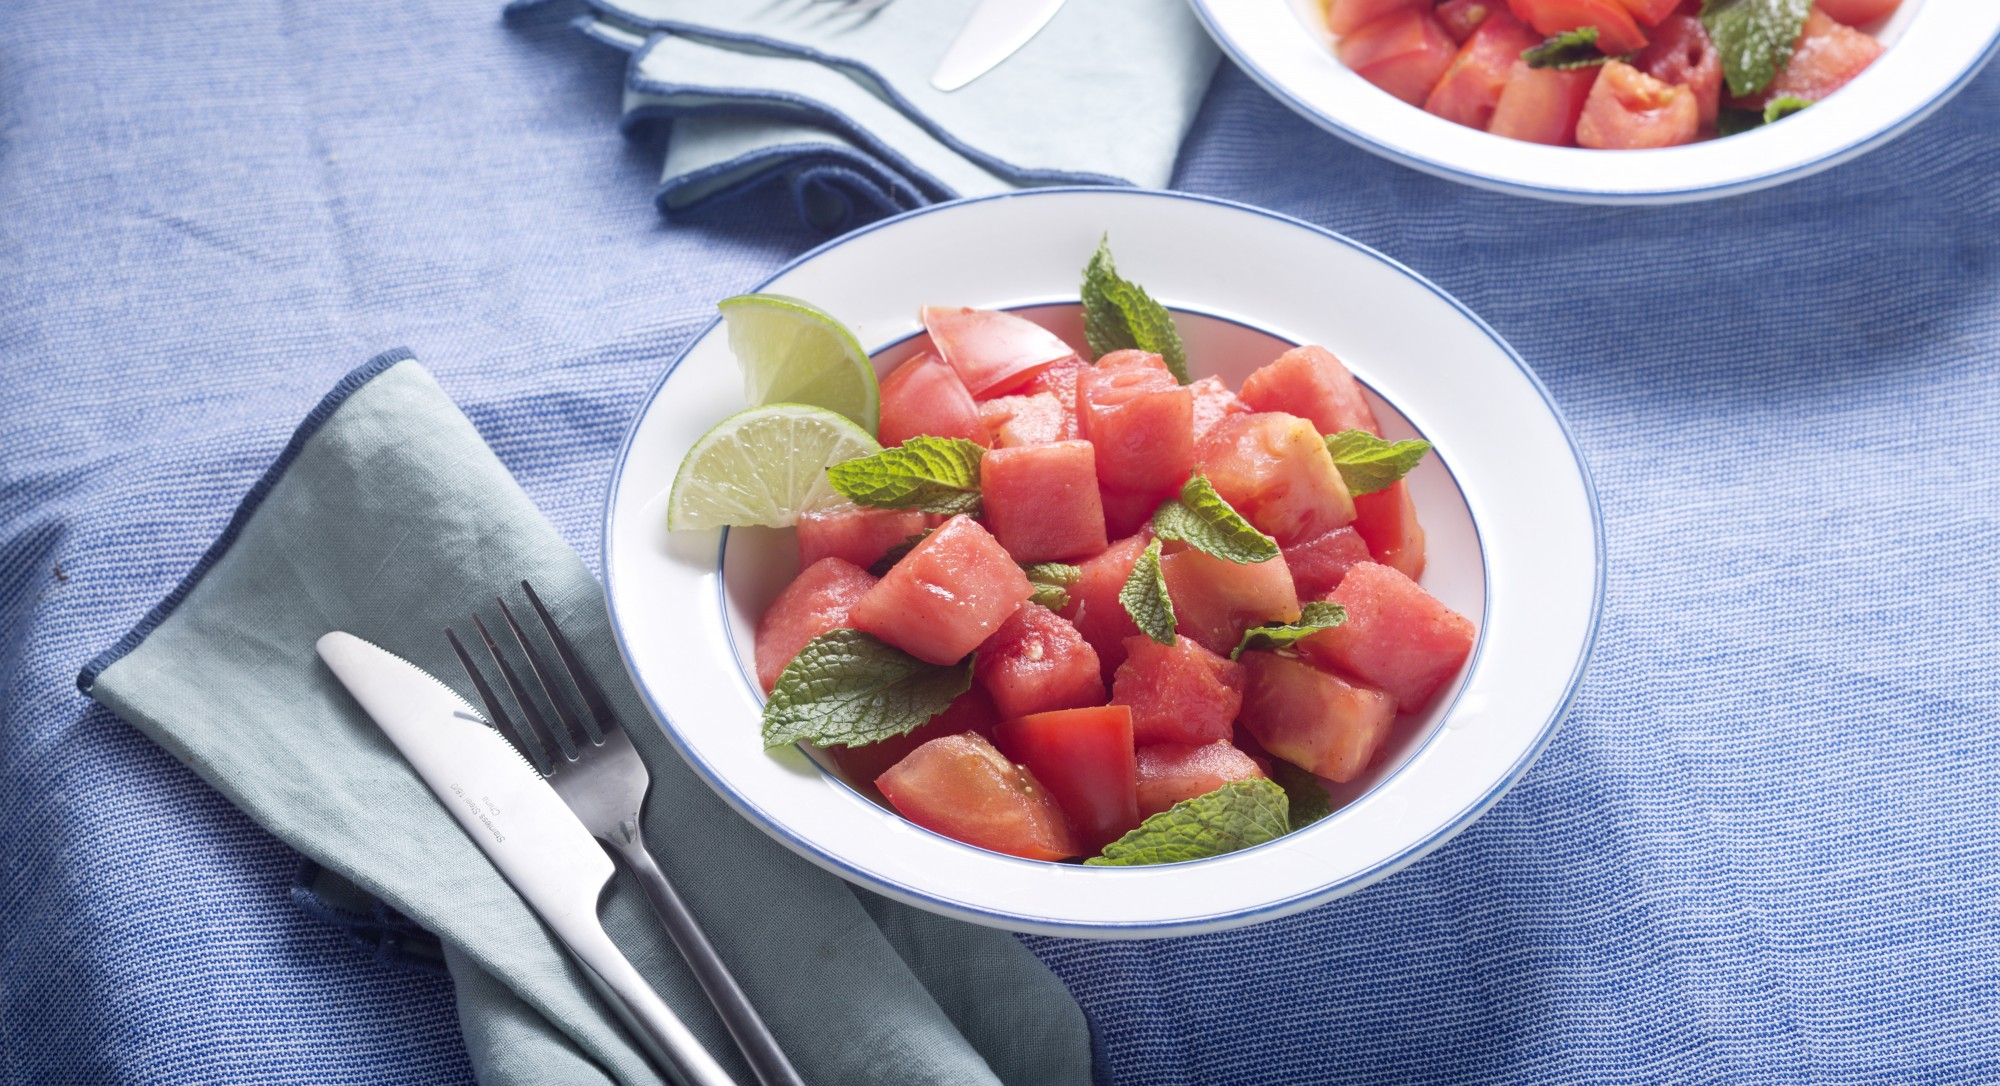 Farmers Market Find: Watermelon Tomato Salad